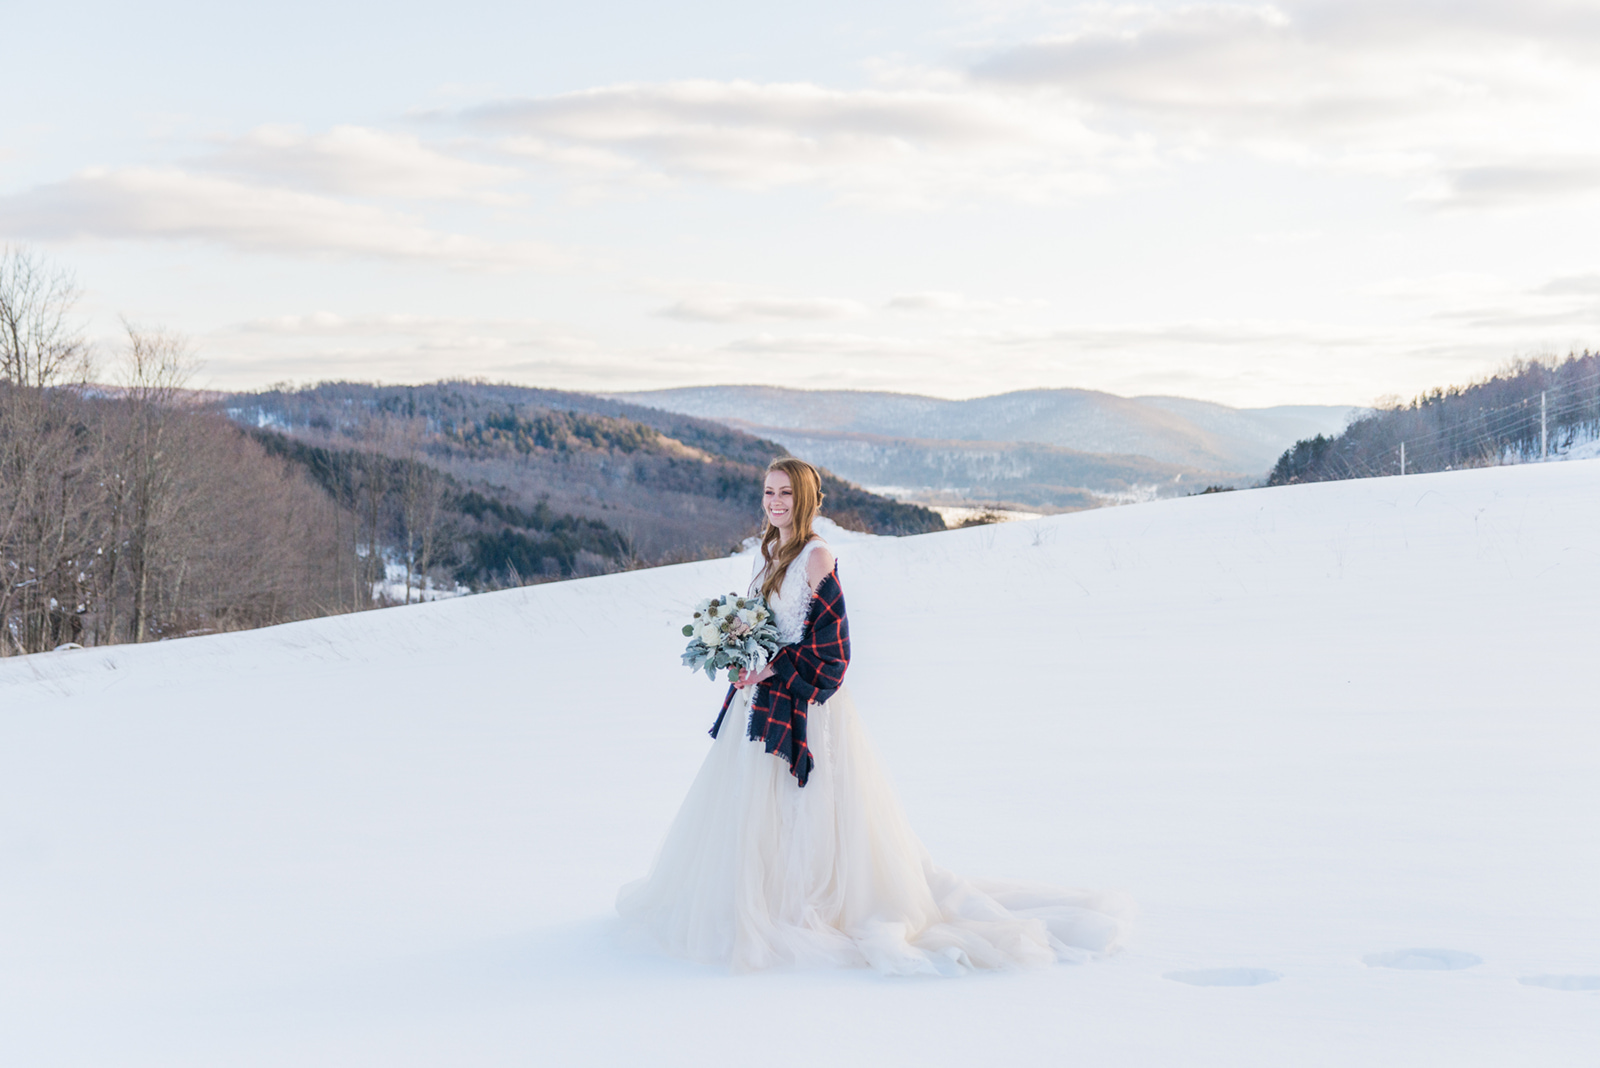 OUTDOOR WEDDING PHOTOGRAPHY SNOWY WHITE FIELD WINTER WEDDING MOUNTAIN WEDDING